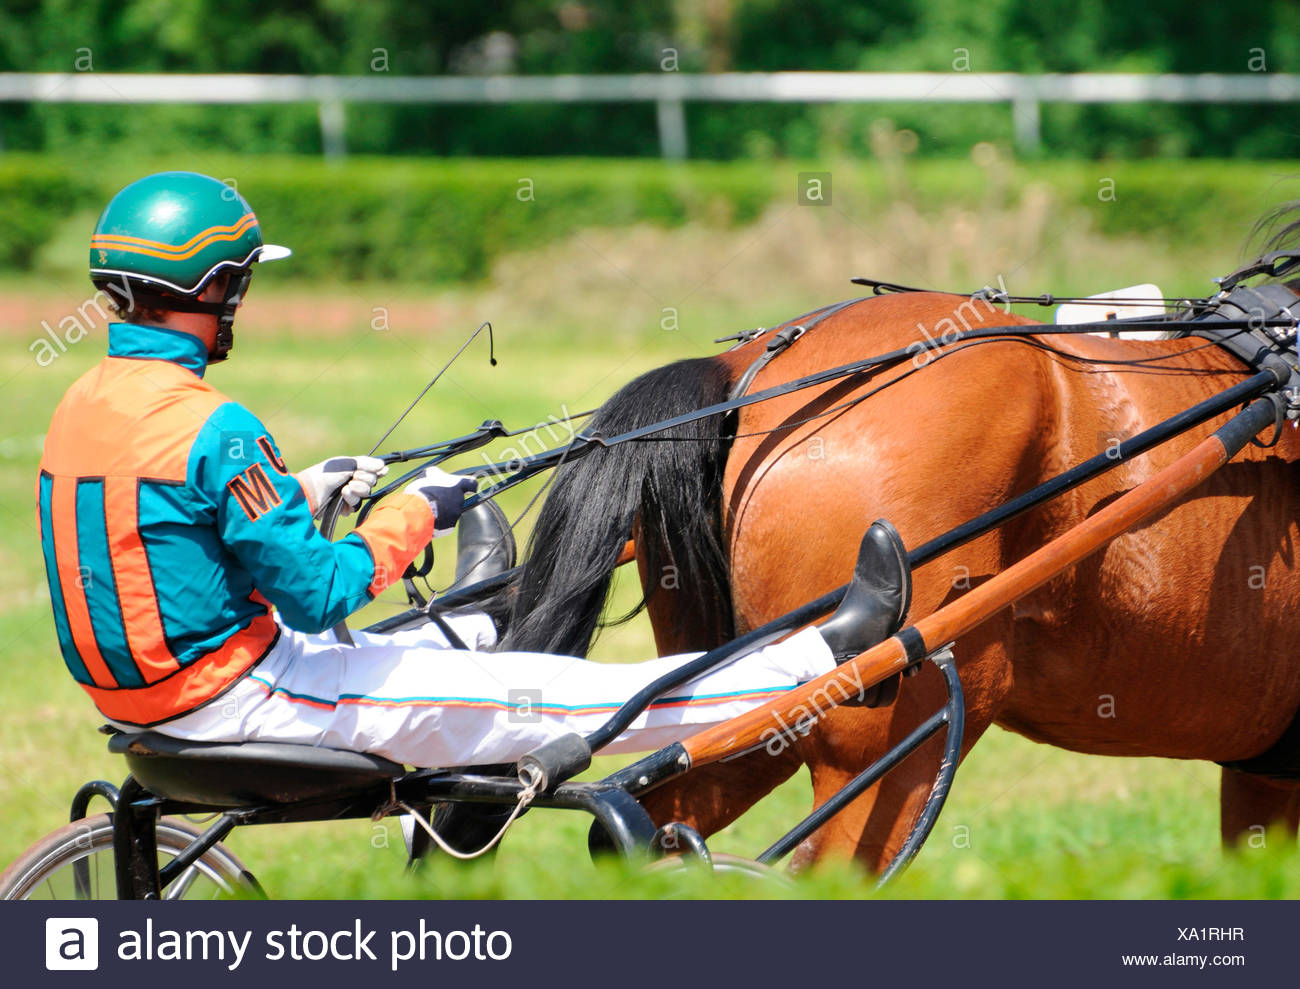 Harness racing / Standardbred, Trotter, sulky, driver, harness Stock